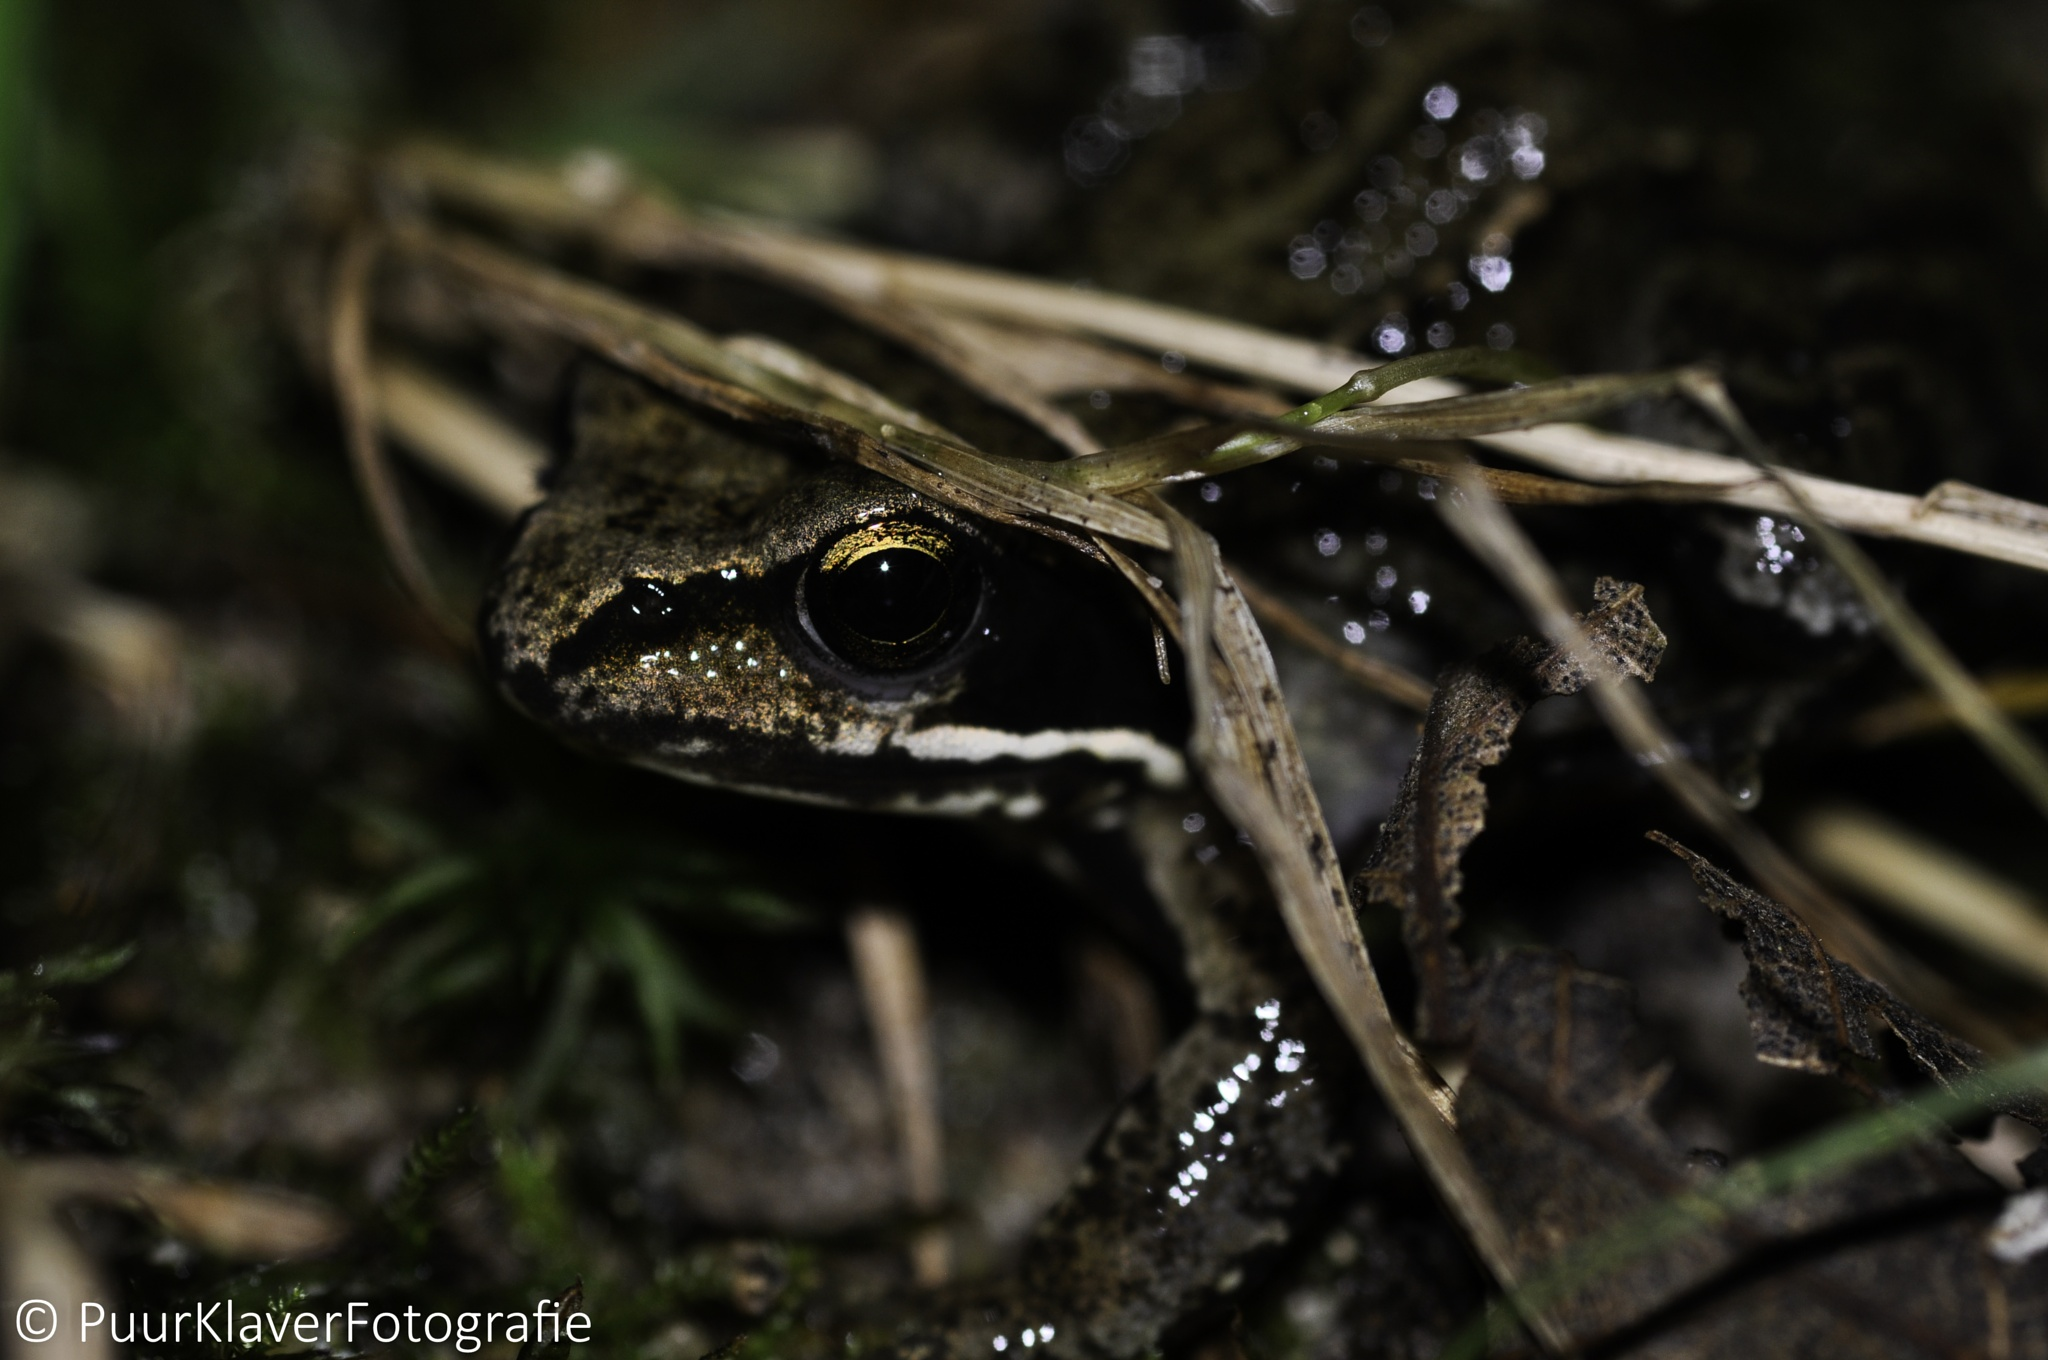 Baby frog by Puurklaver